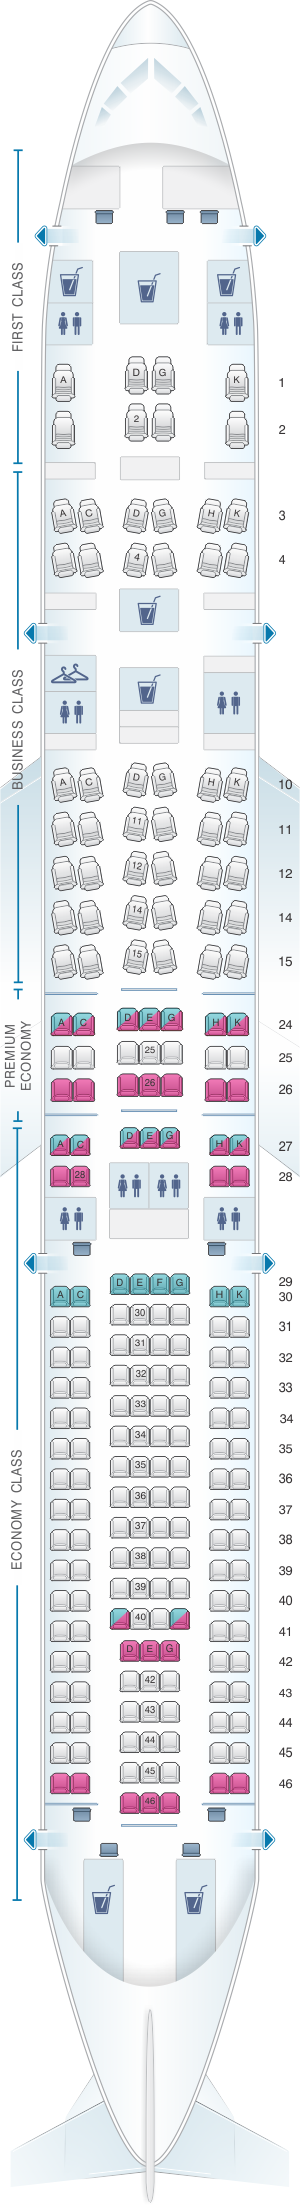 Seat map for Lufthansa Airbus A330 300 216pax